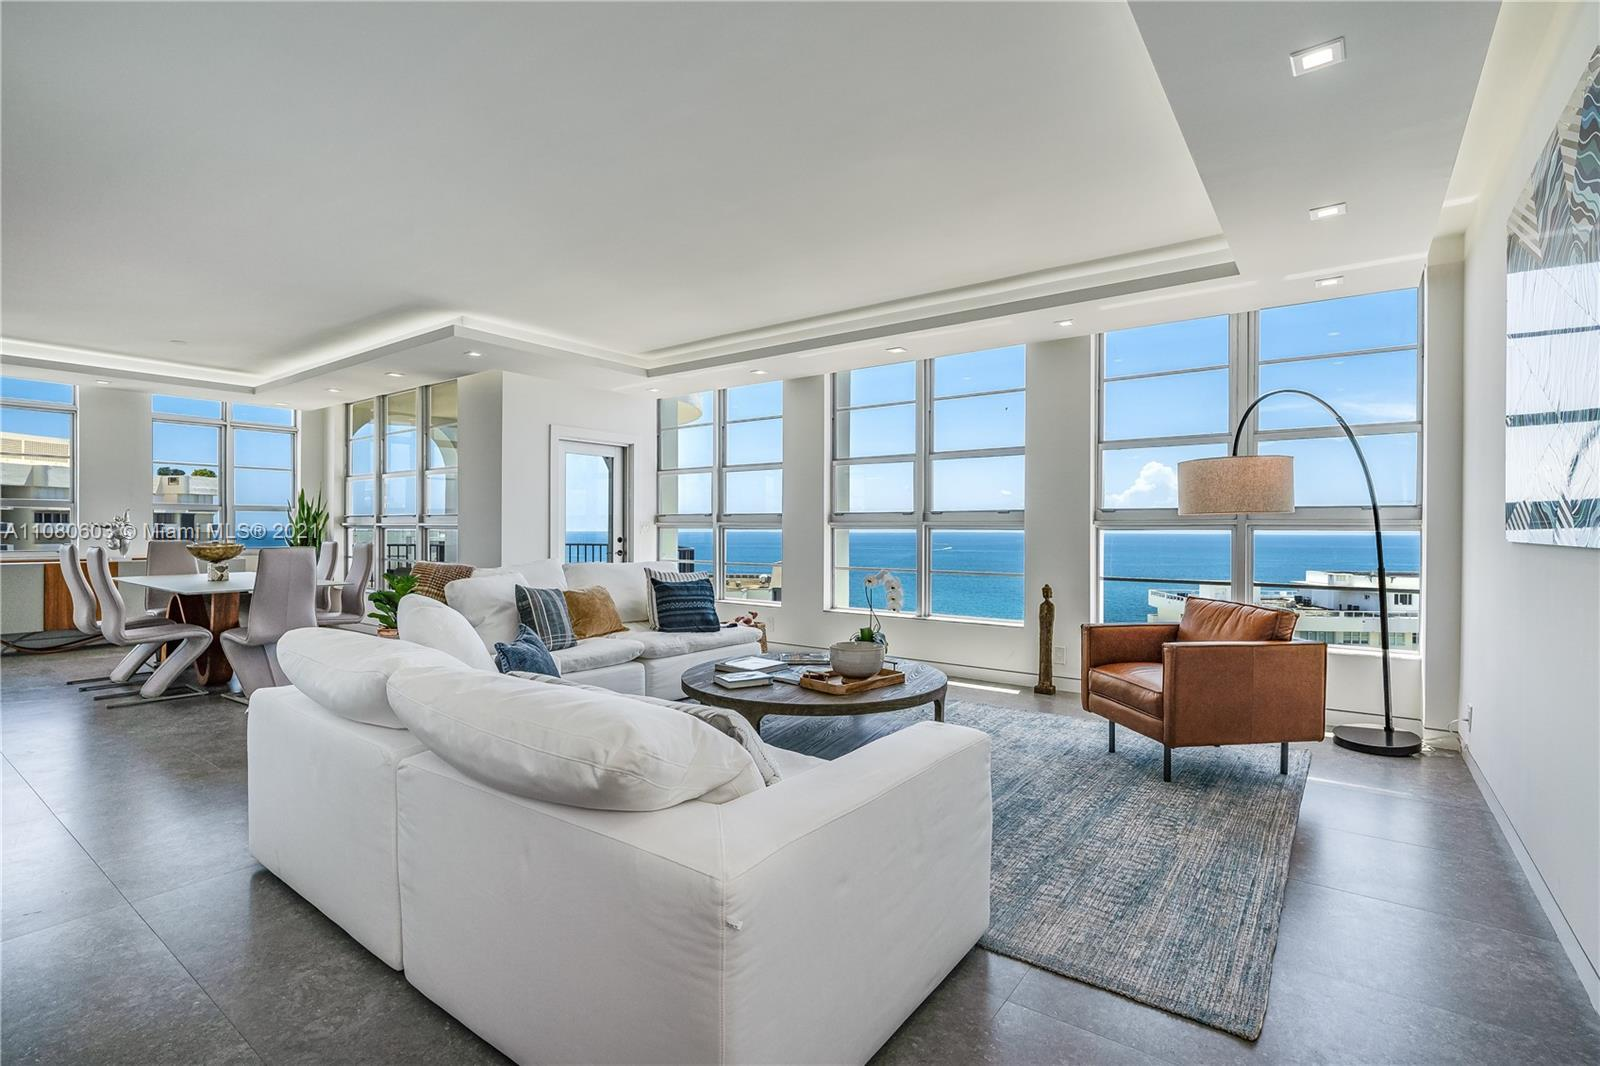 Trendy turnkey, spacious, waterfront Lower Penthouse on desirable Miami Beach. Fully Remodeled,  Exp